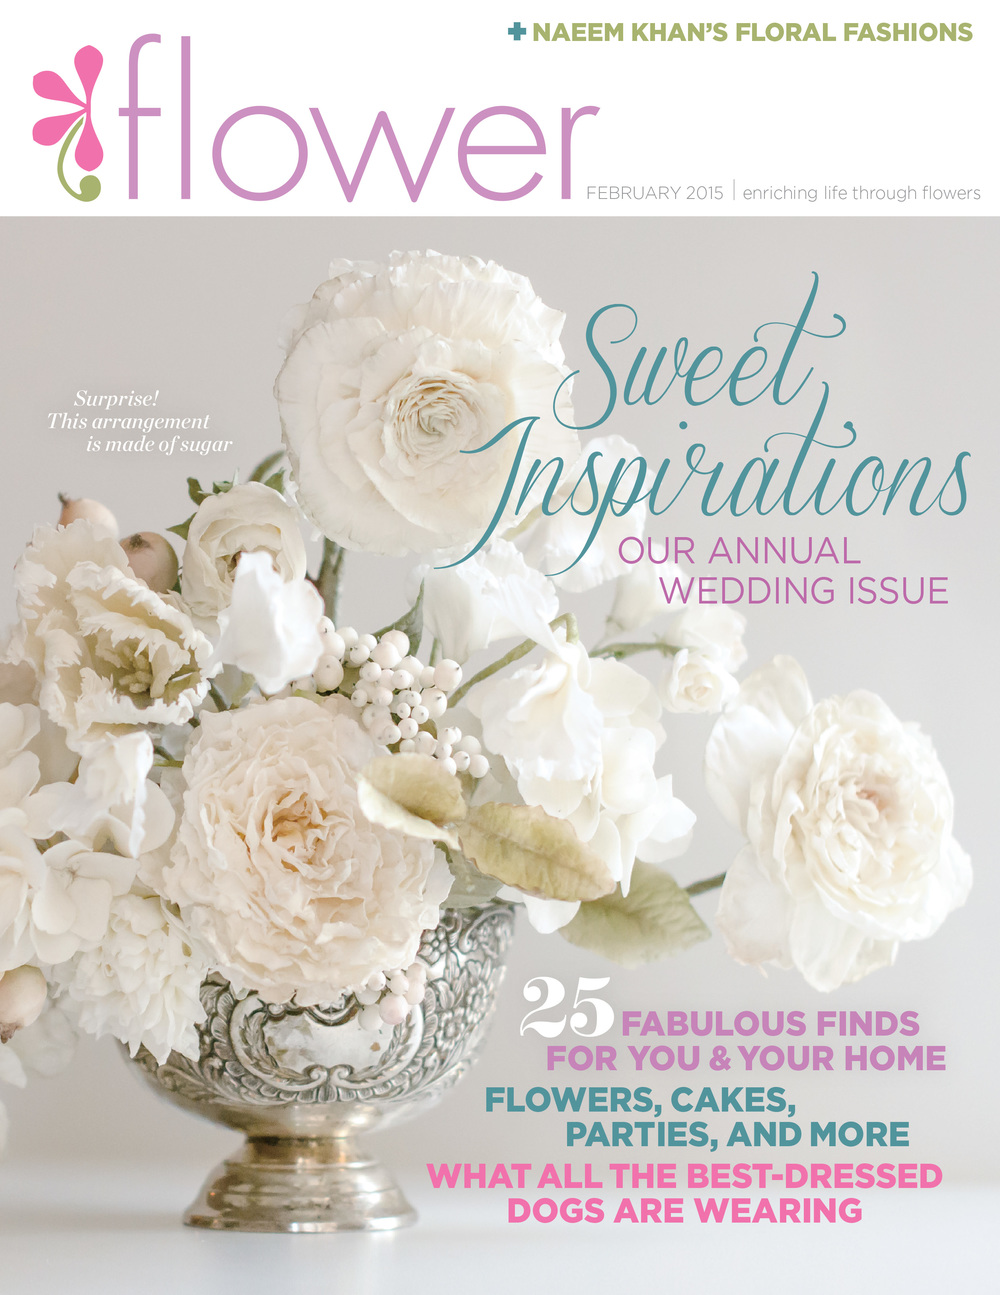 flower_Cover_JanFeb15 copy.jpg